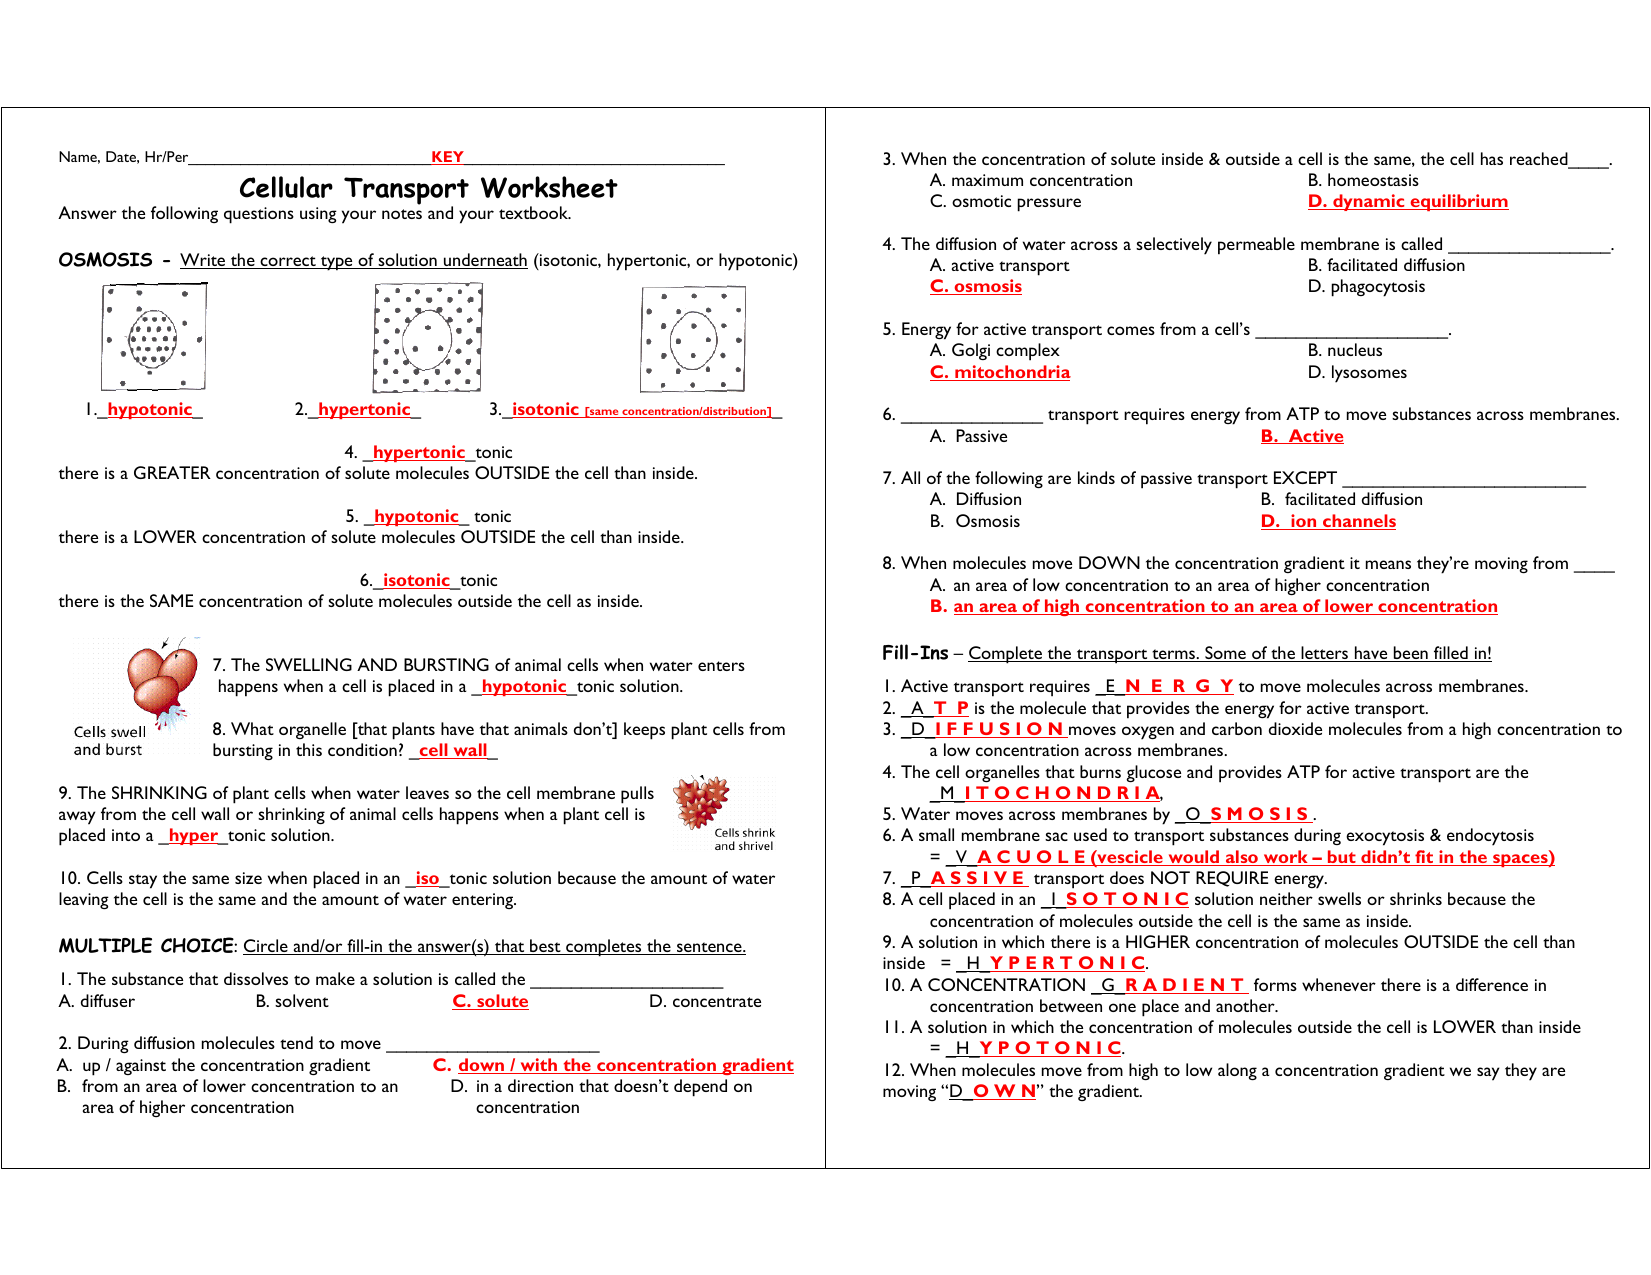 Cell transport chapter 4 section 1 worksheet answer key